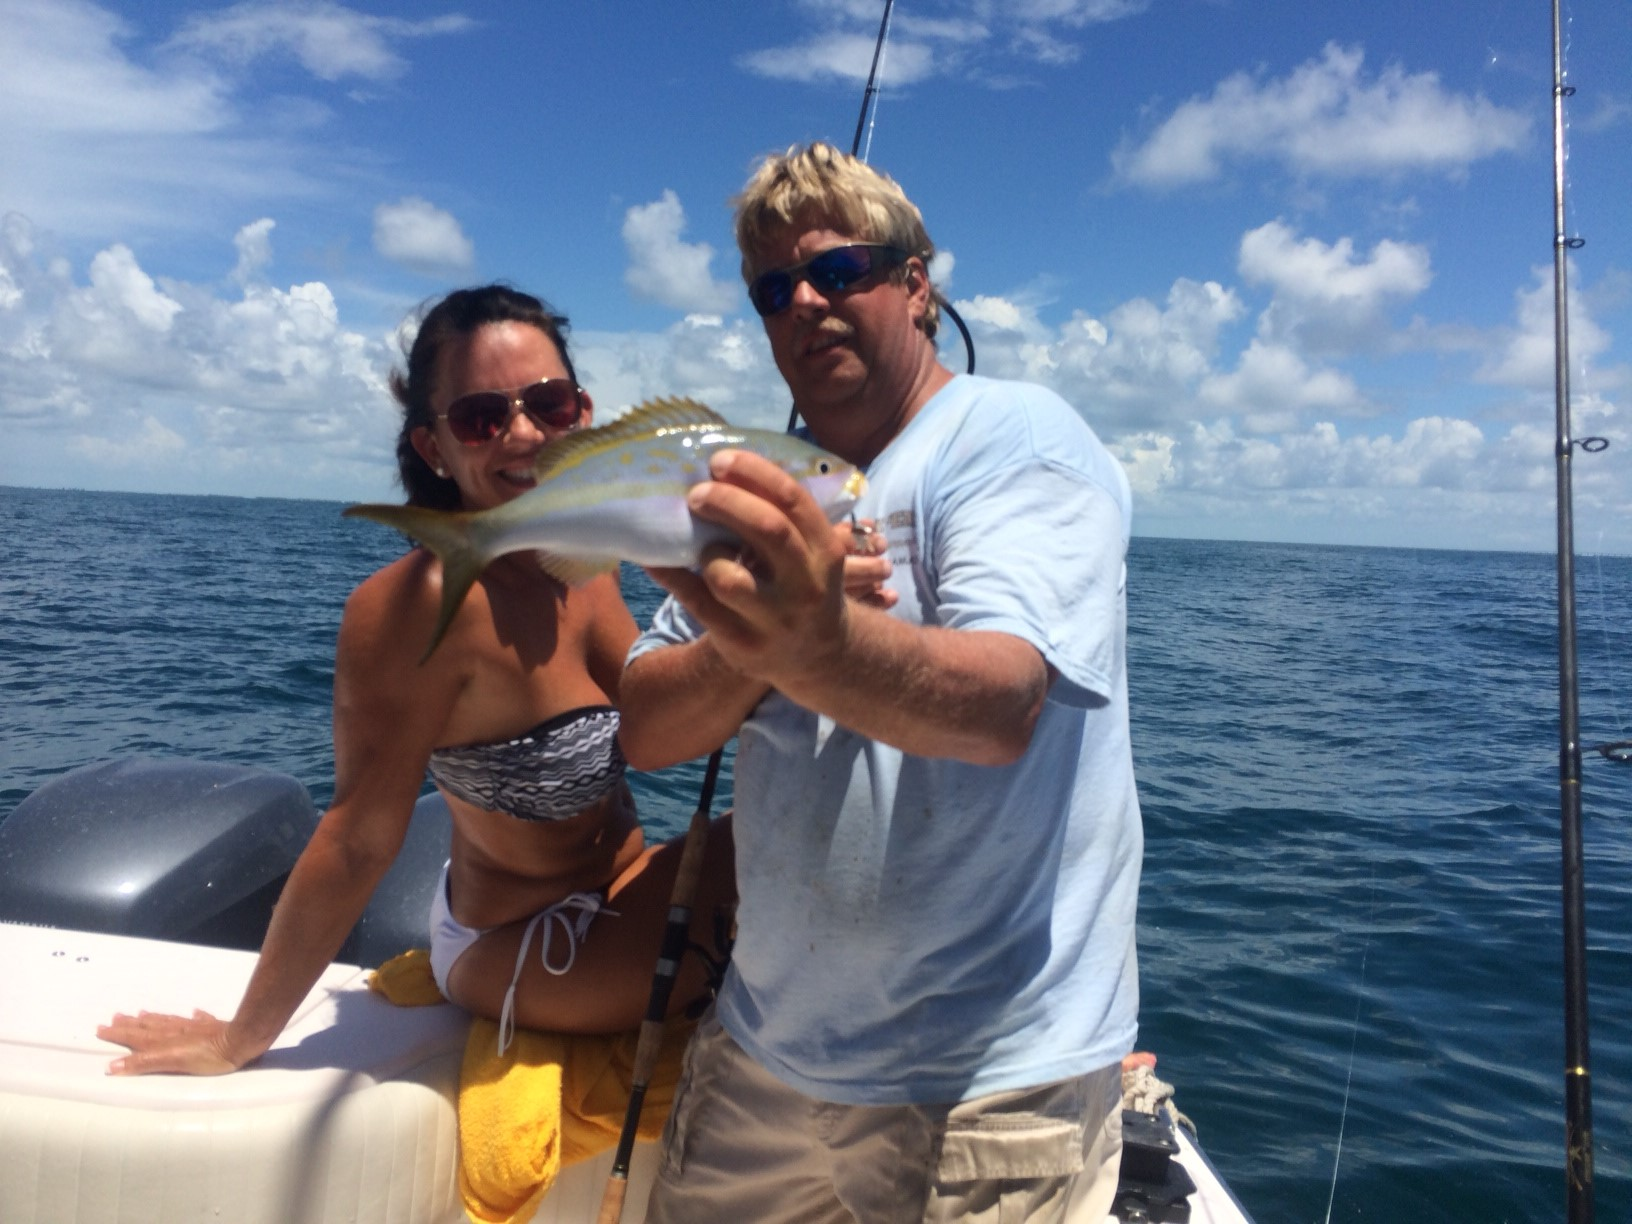 Erica's yellowtail snapper caught on a 3/4 day charter off Marathon in the Fl Keys.